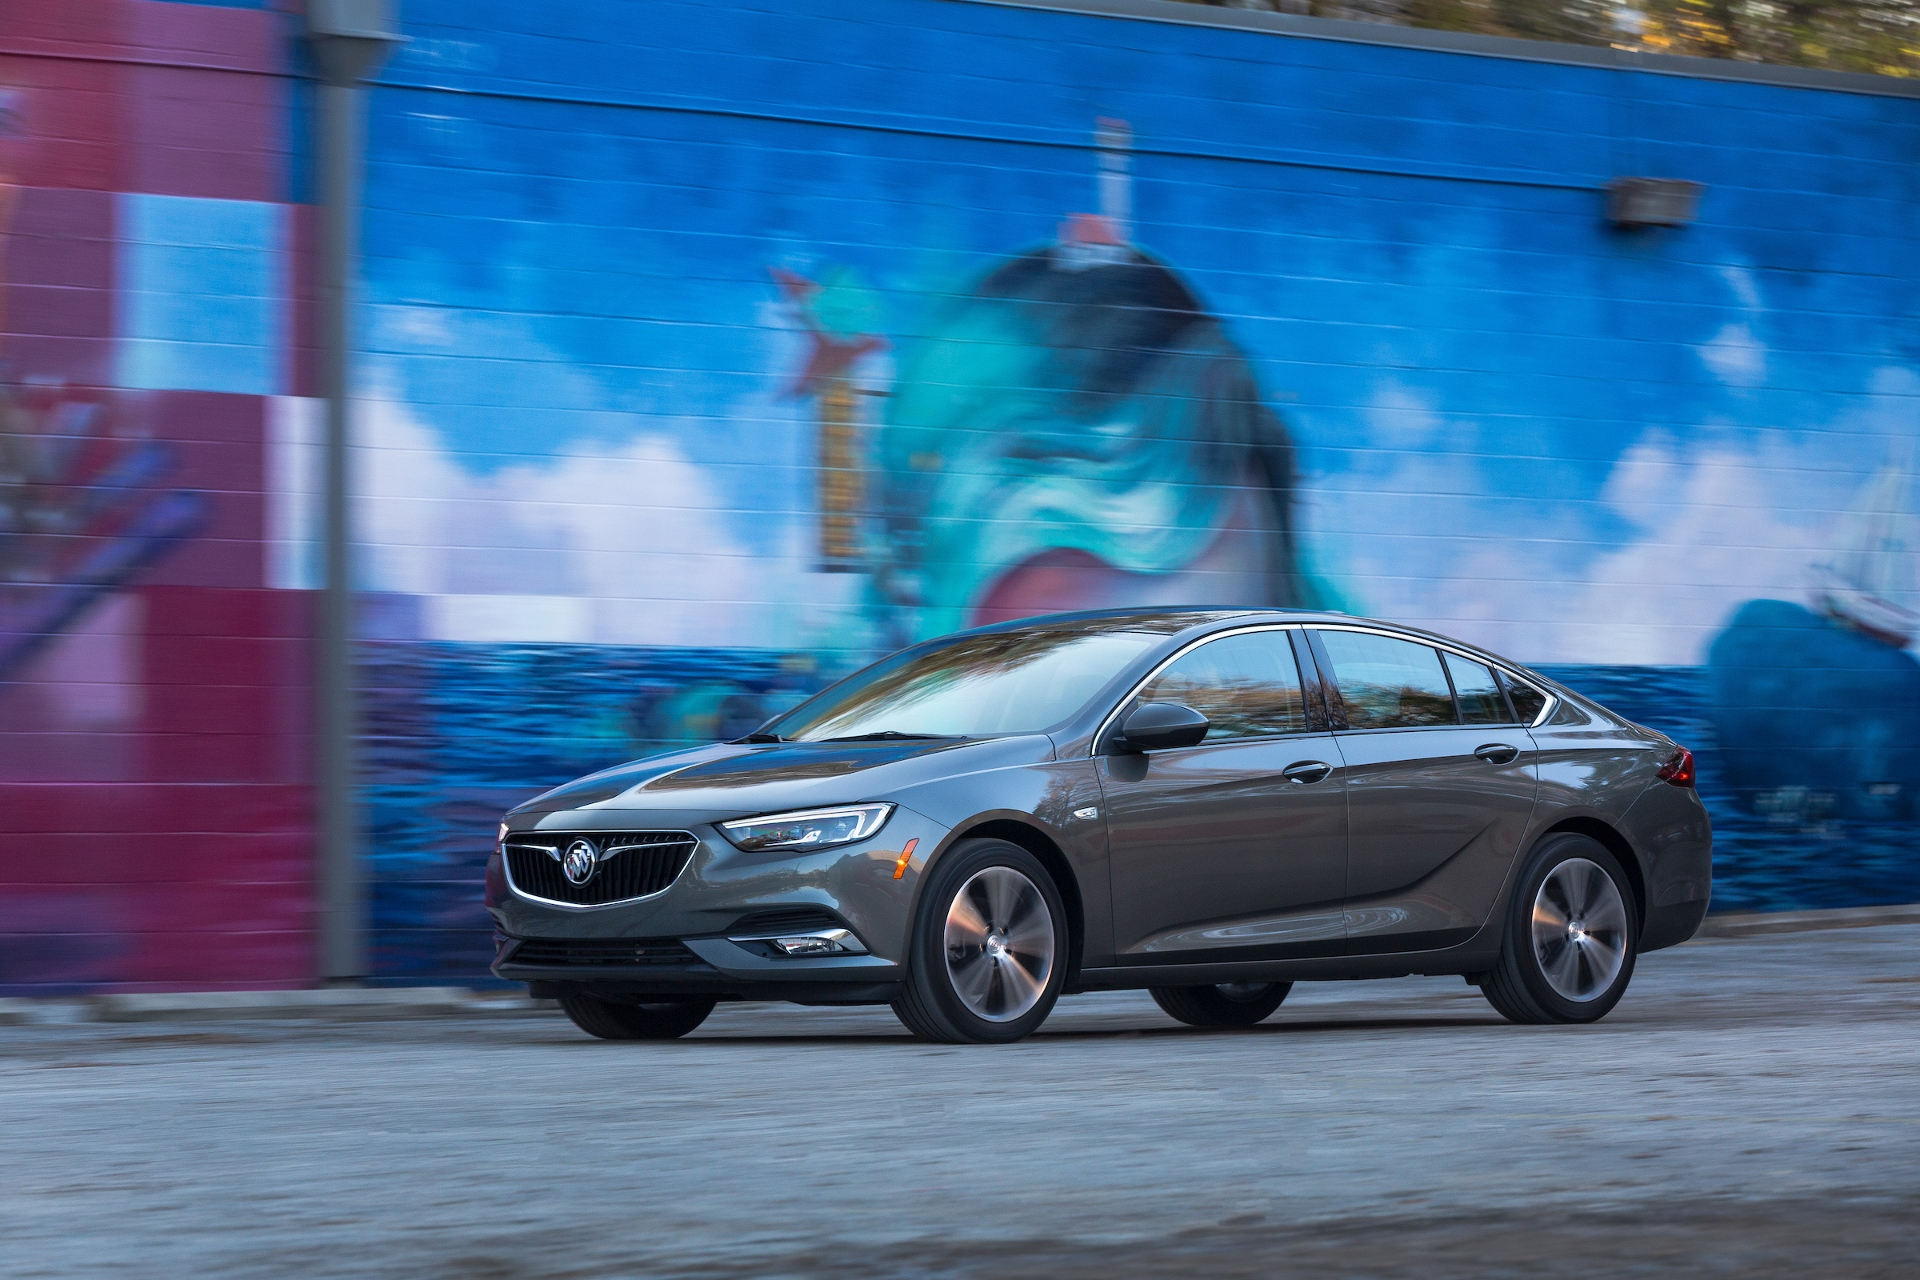 2018 Buick Regal Sportback First Drive Review: The Crossover New 2022 Buick Regal Sportback Review, Price, 0-60